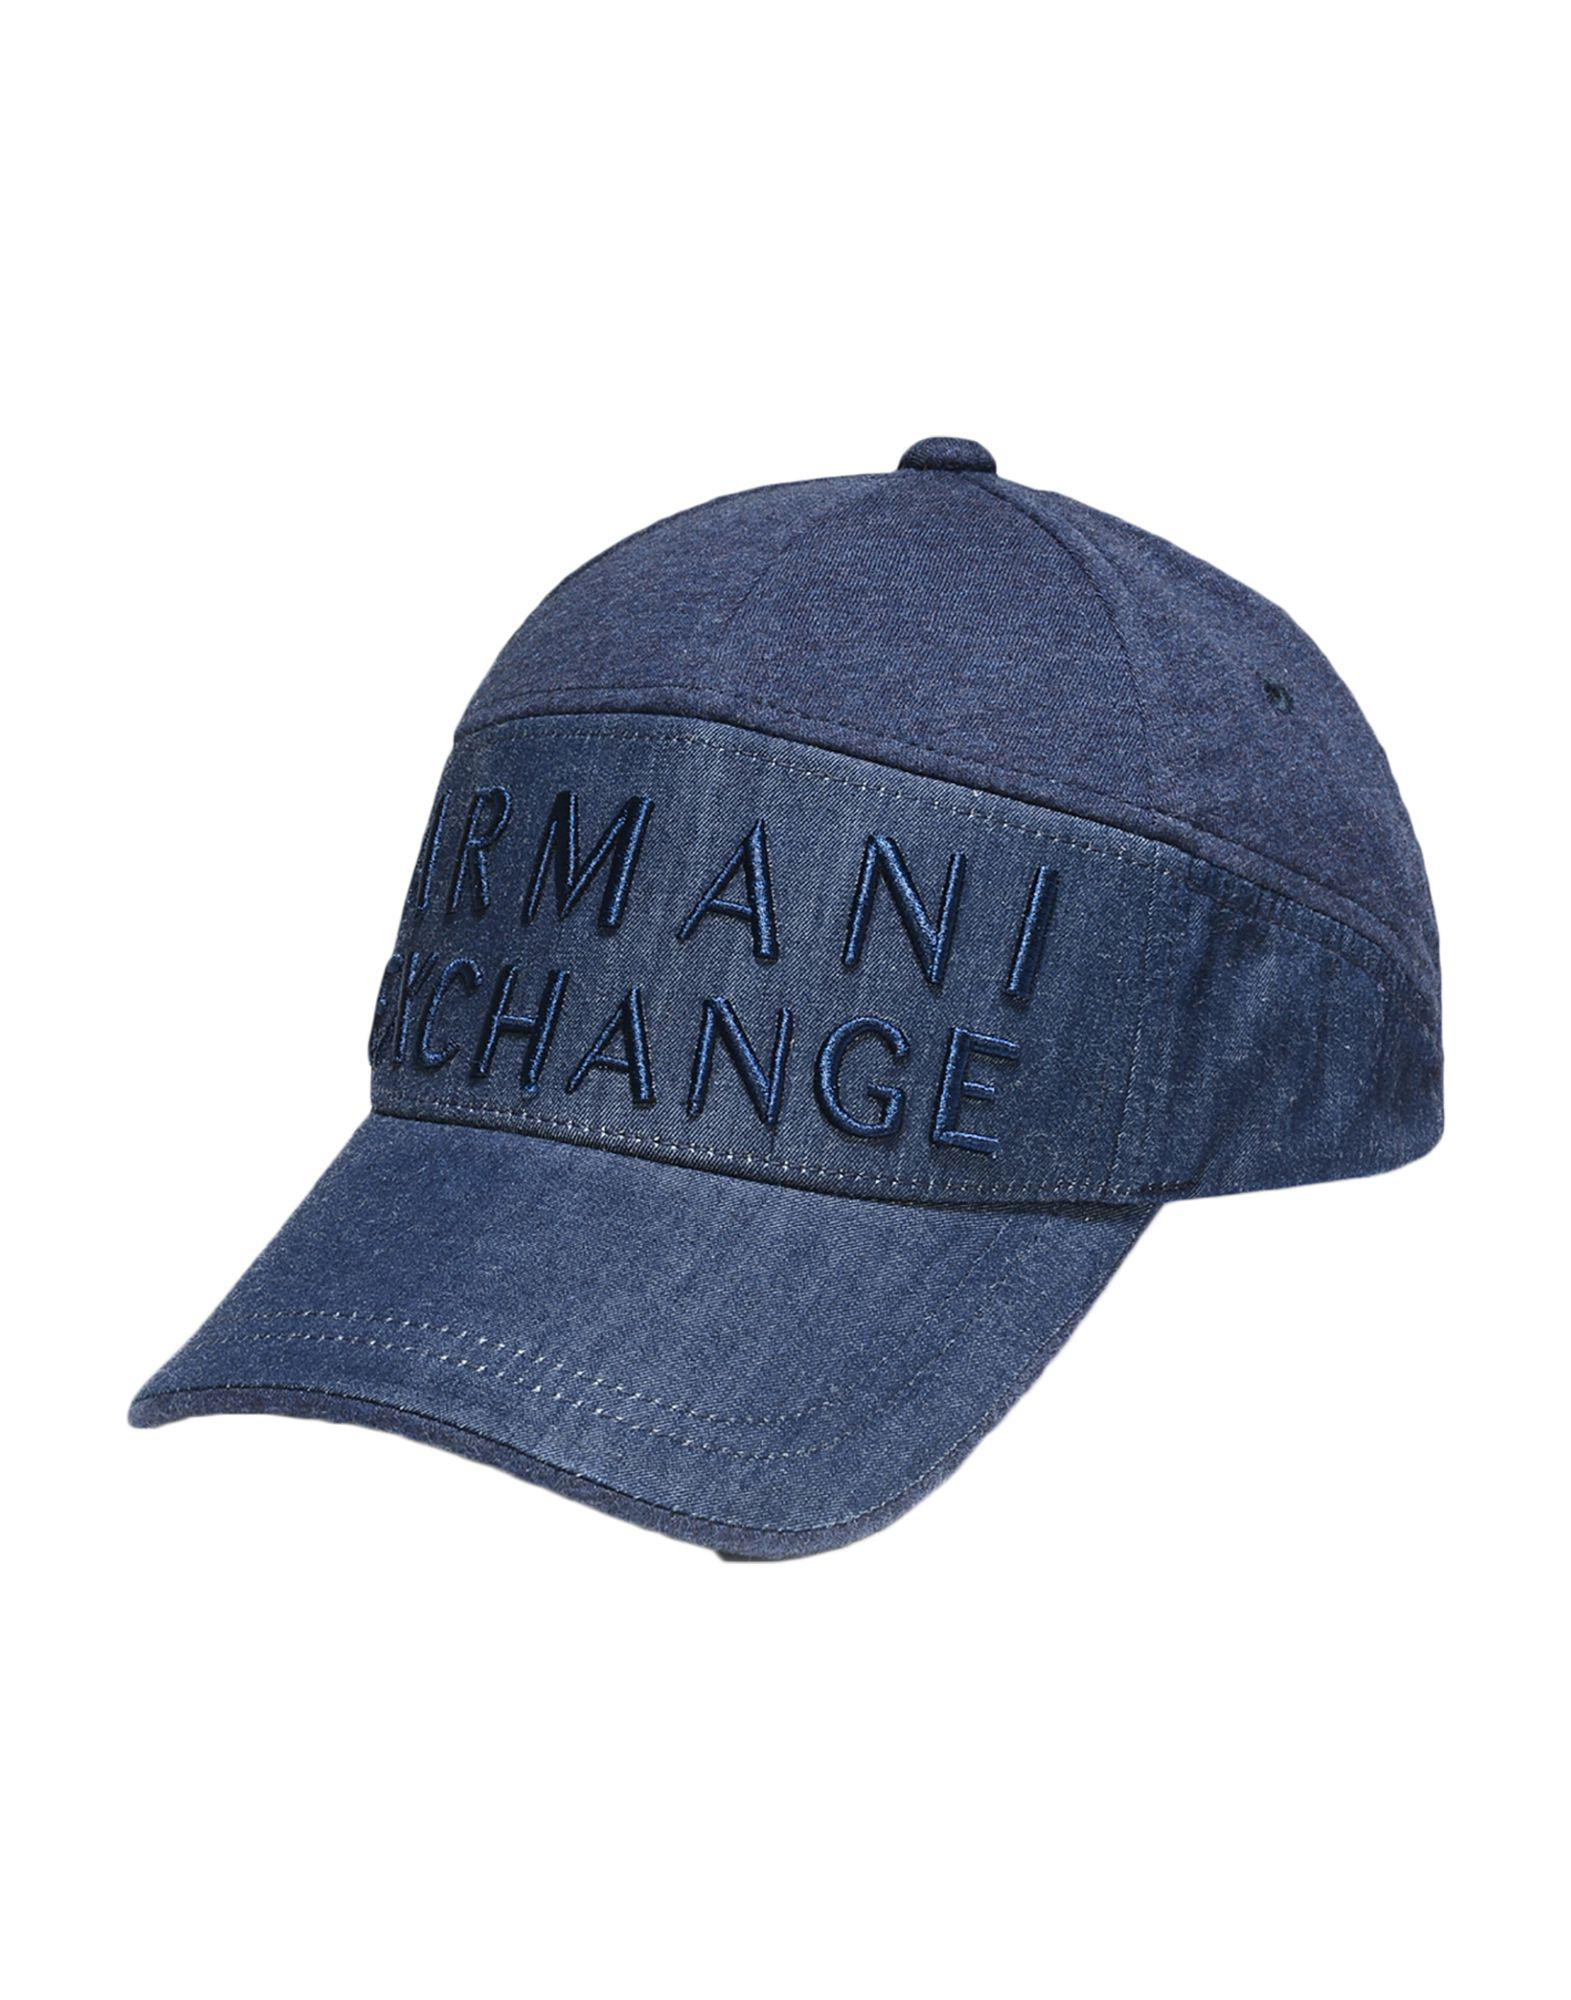 84ccb447951 Lyst - Armani Exchange Hat in Blue for Men